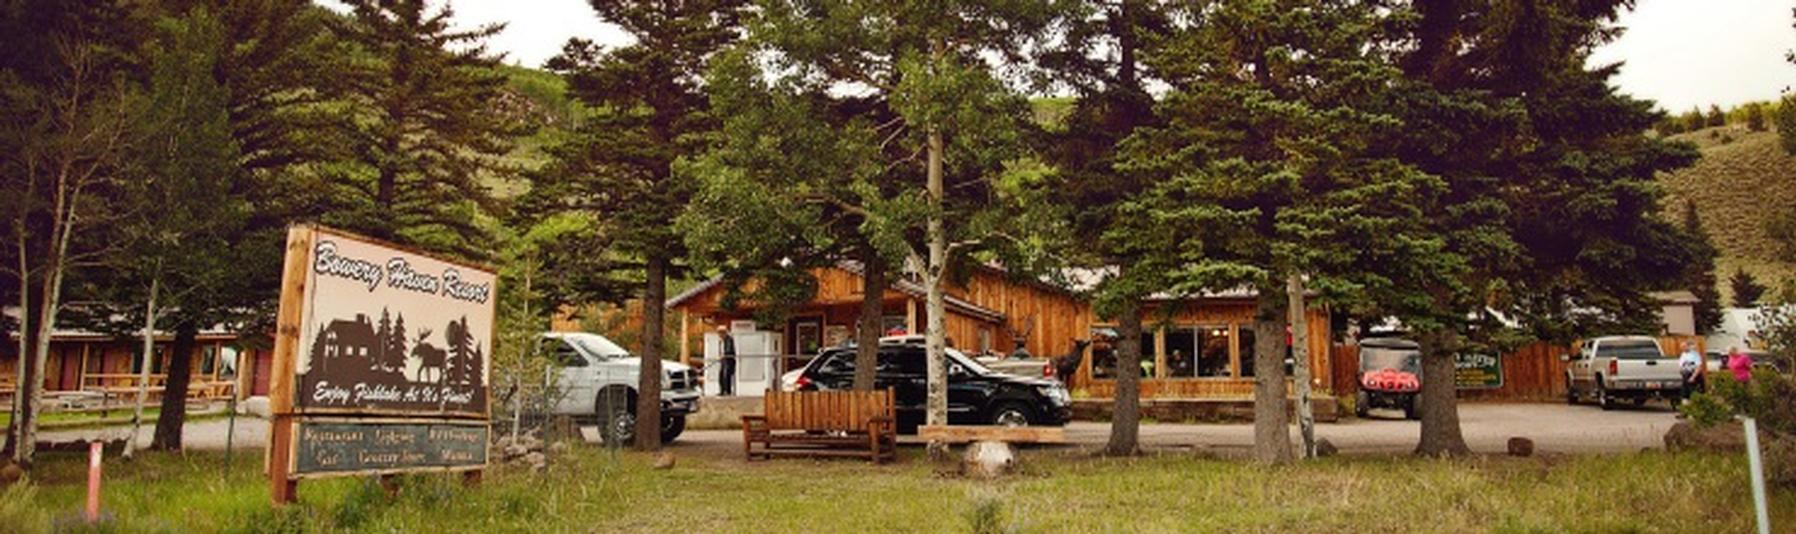 Bowery Haven Resort RV Park